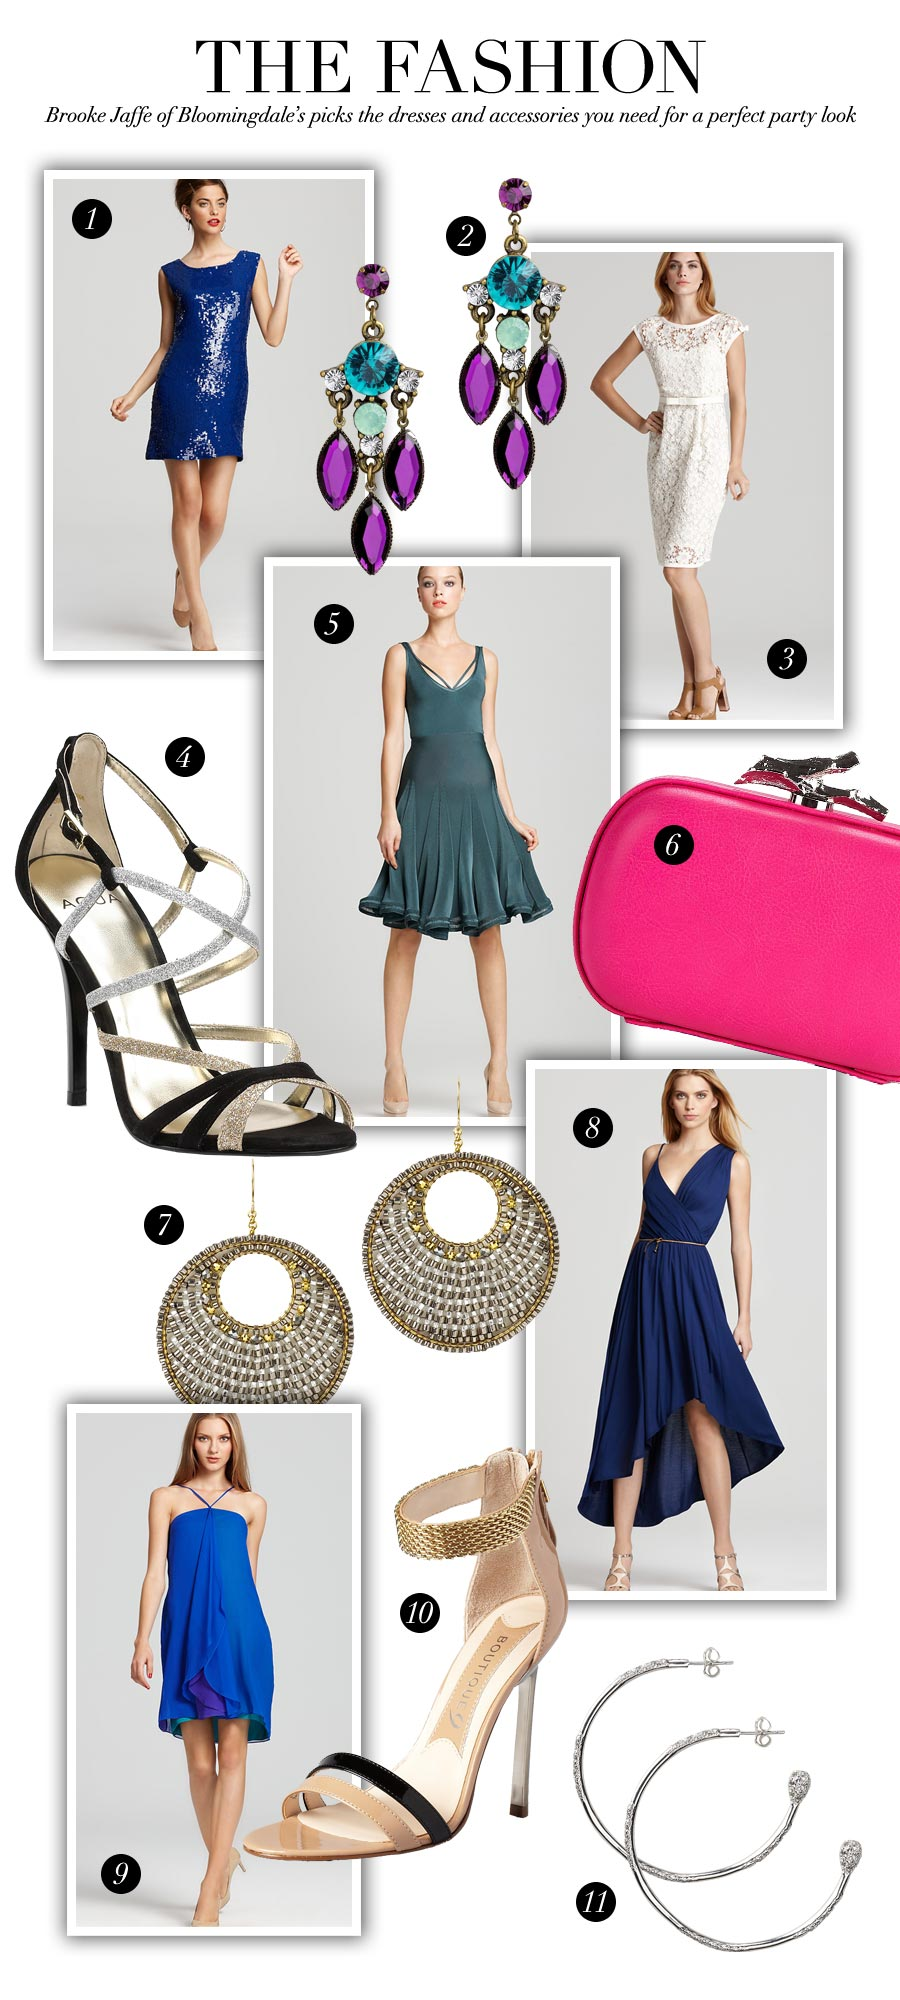 Perfect Party Looks by Brooke Jaffe, Bloomingdale's - The Fashion - Brooke Jaffe of Bloomingdale's picks the dresses and accessories you need for a perfect party look